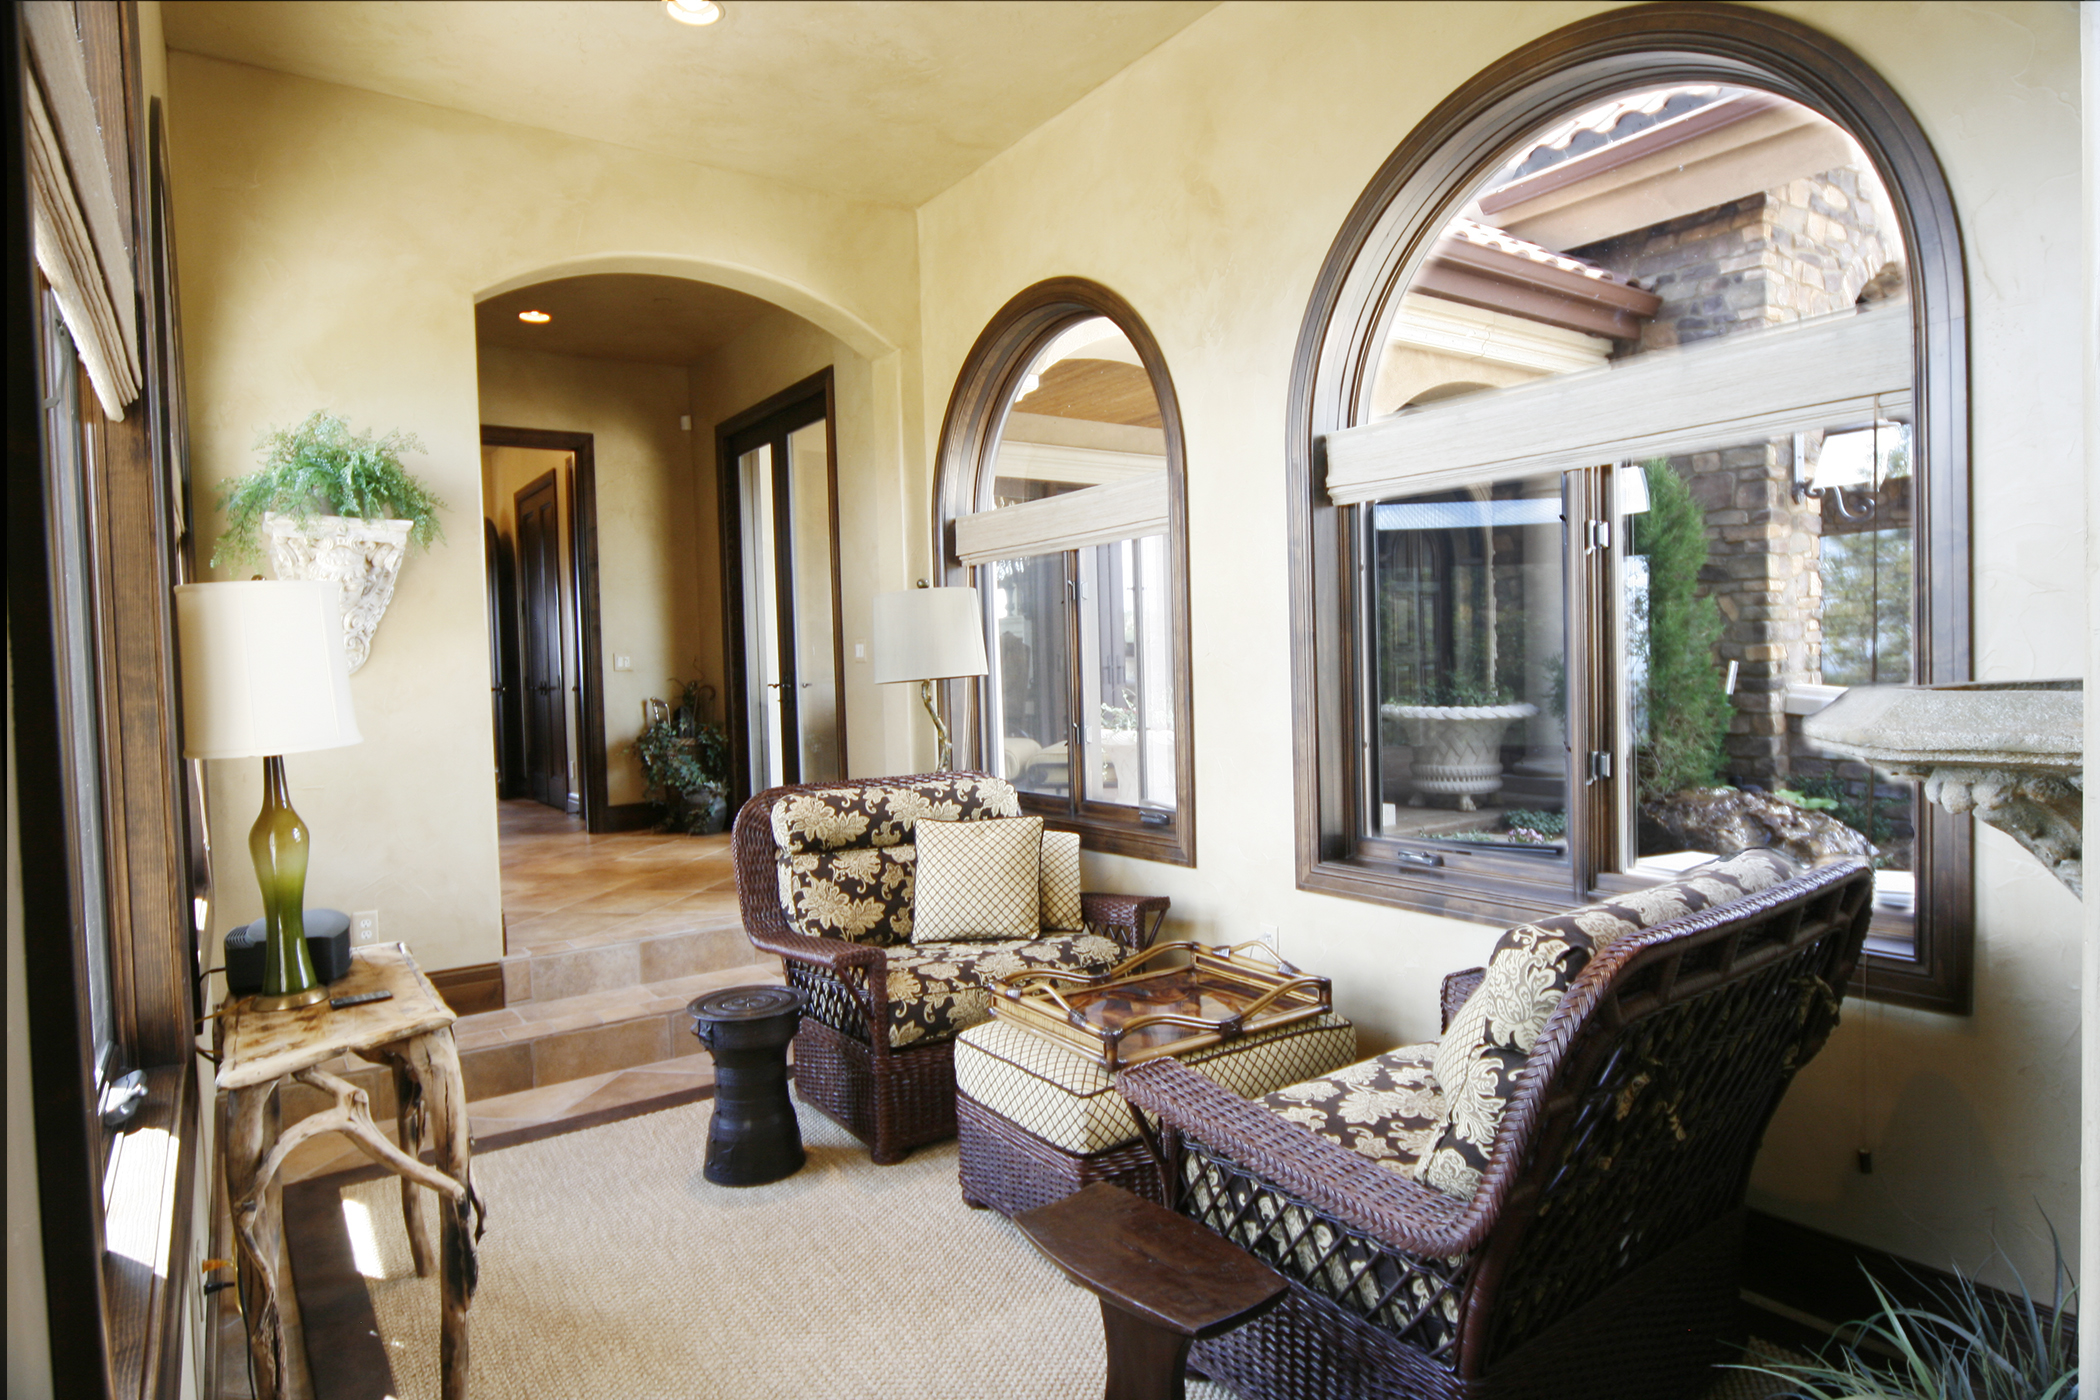 12-Breezeway from Kitchen to Guest Quarters.jpg